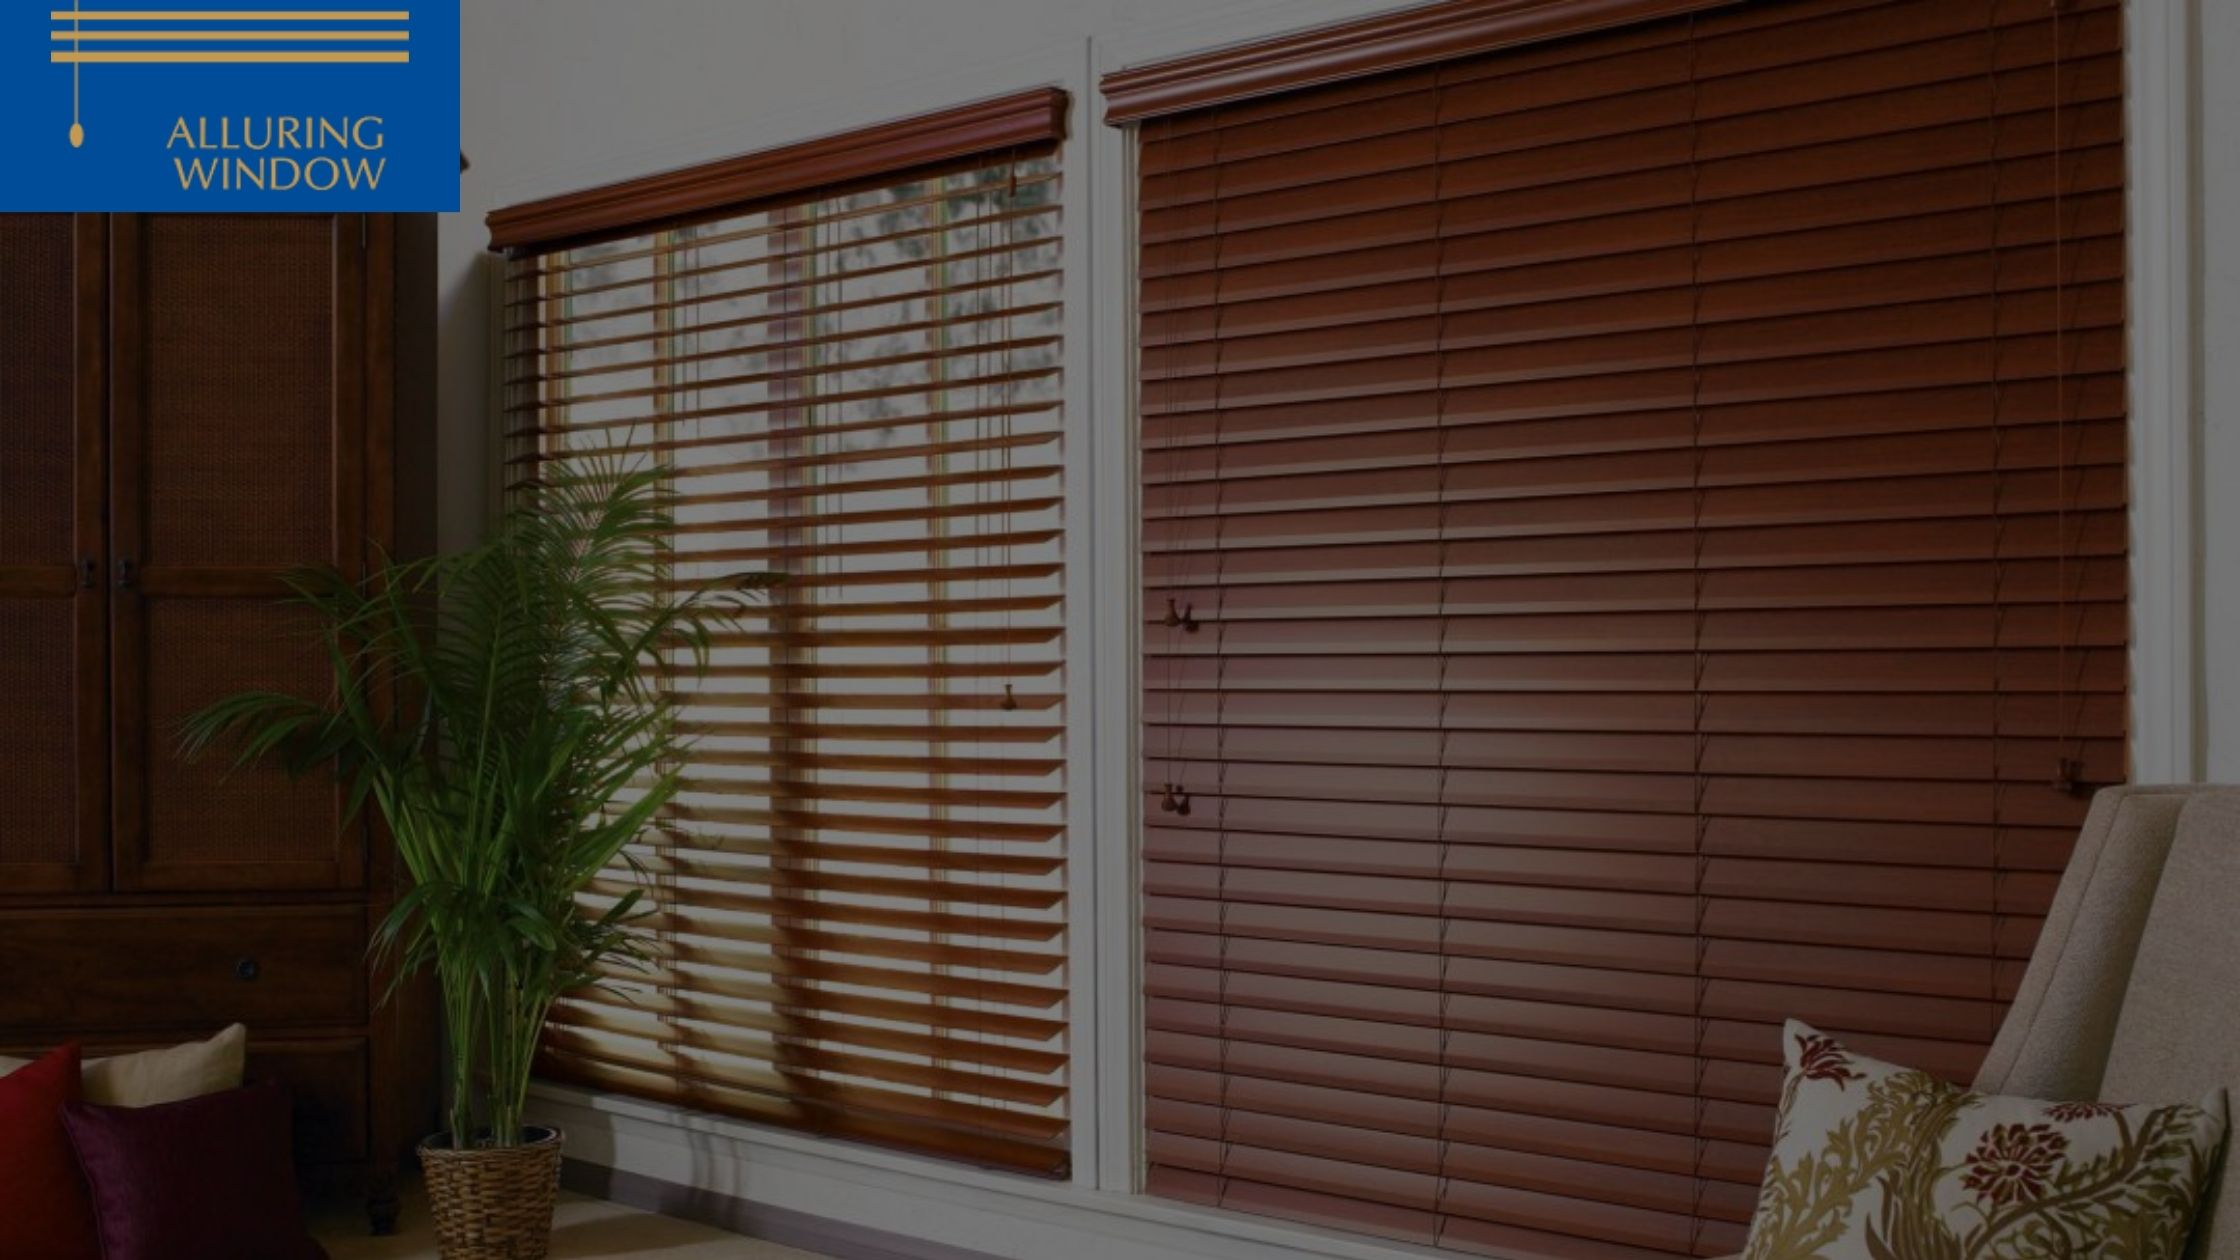 Feng Shui Your Home for Summer with Bamboo Blinds